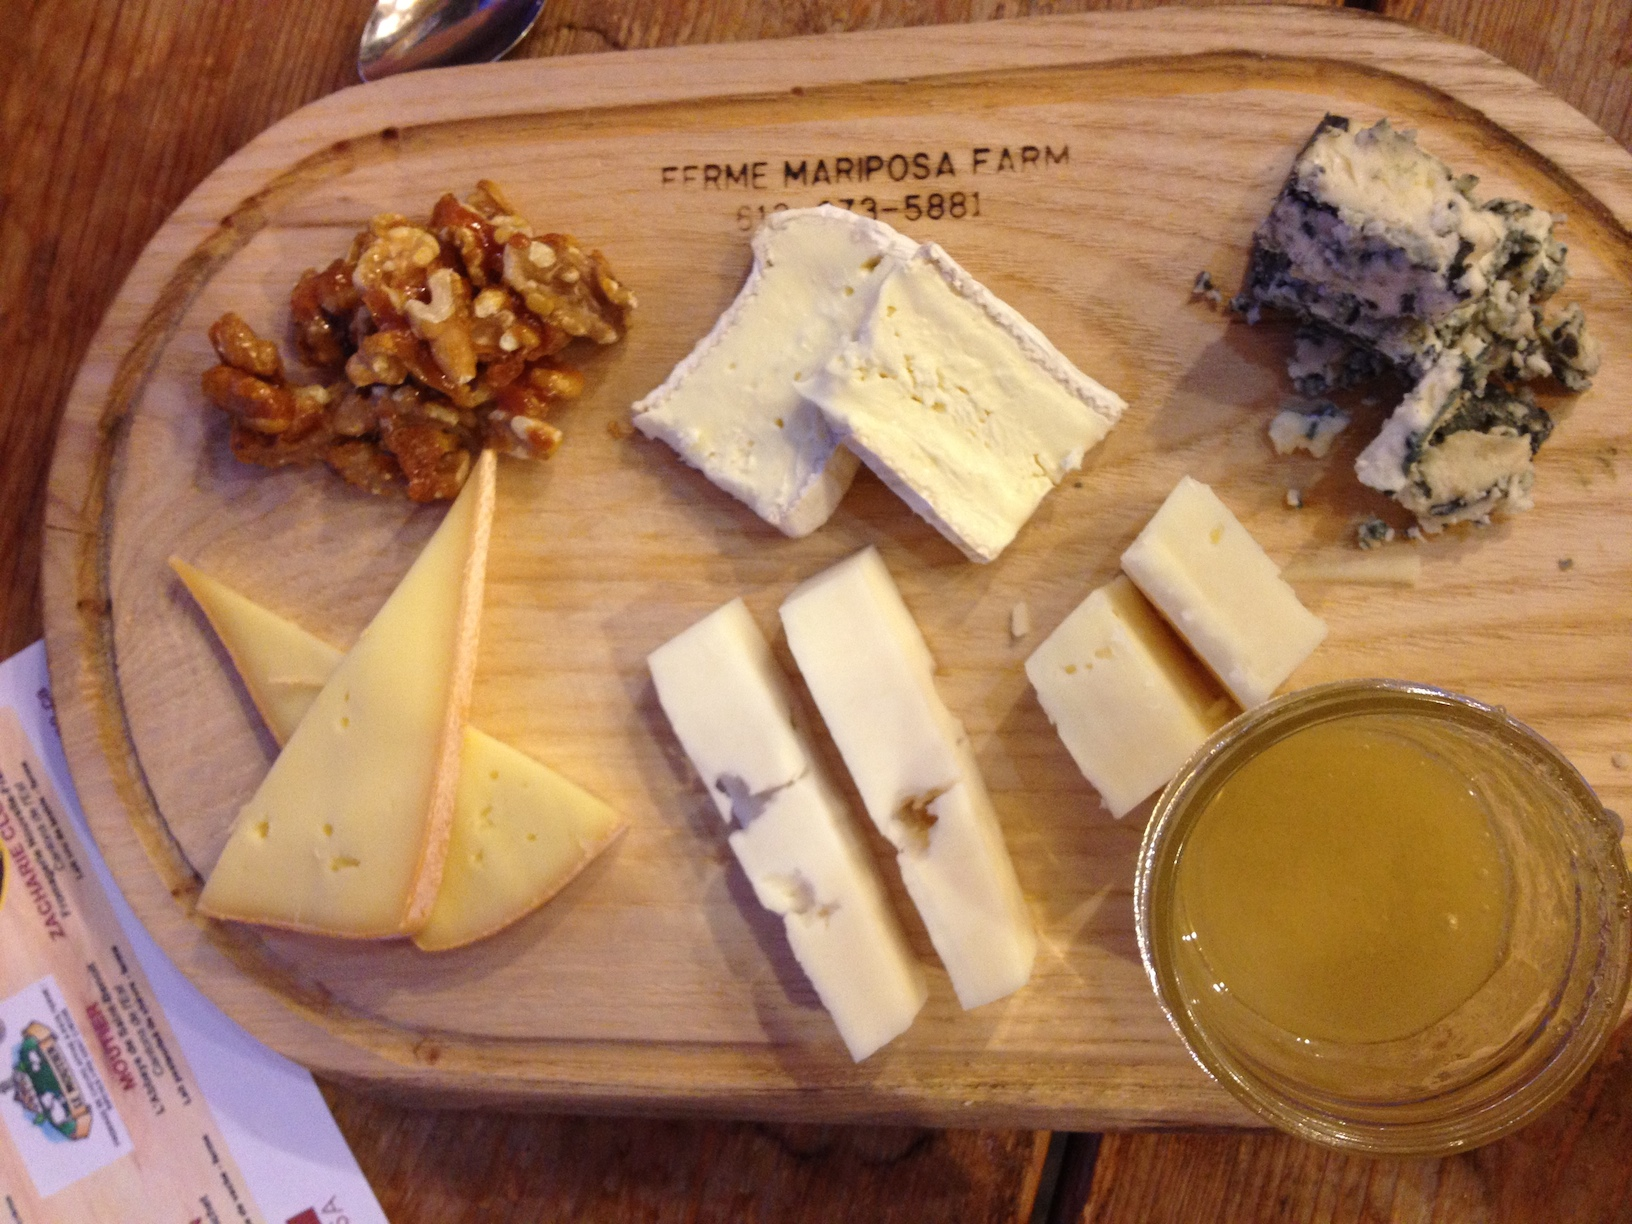 Quebec cheese course: Riopelle, Zacharie Cloutier, Bleu d'Elisabeth, Moutier, Baluchon.